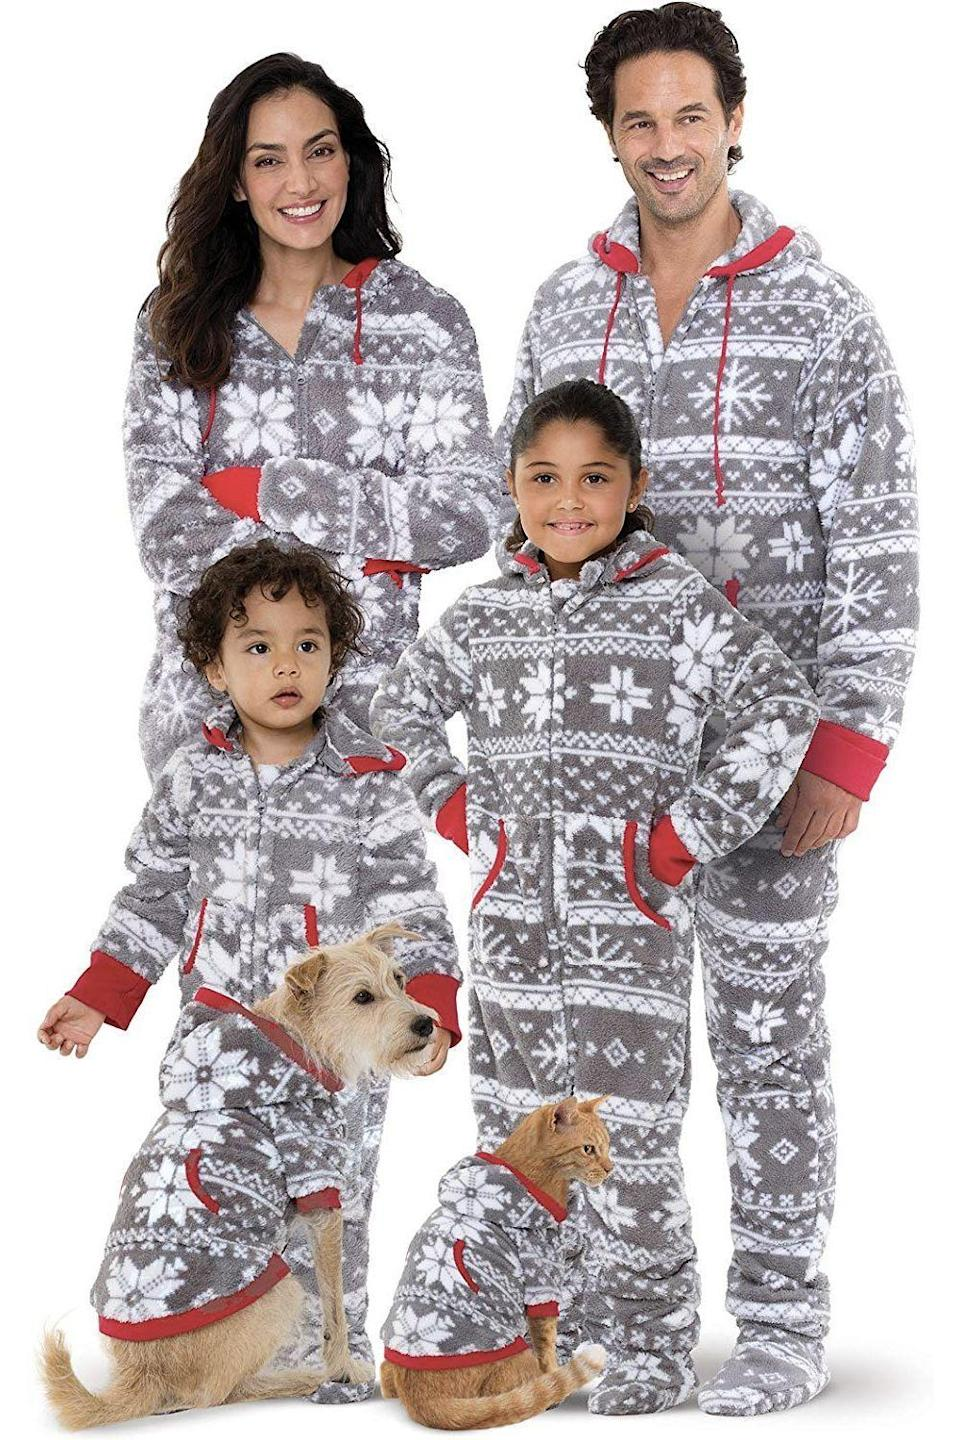 """<p><strong>PajamaGram</strong></p><p>Starting from $25</p><p><a href=""""http://www.amazon.com/dp/B01M18JTQ0/?tag=syn-yahoo-20&ascsubtag=%5Bartid%7C10055.g.4946%5Bsrc%7Cyahoo-us"""" rel=""""nofollow noopener"""" target=""""_blank"""" data-ylk=""""slk:Shop Now"""" class=""""link rapid-noclick-resp"""">Shop Now</a></p><p>If you're a warm-climate family visiting cold-climate relatives, this especially warm set of PJs will help you adjust to a chillier-than-usual Christmas morning.</p>"""